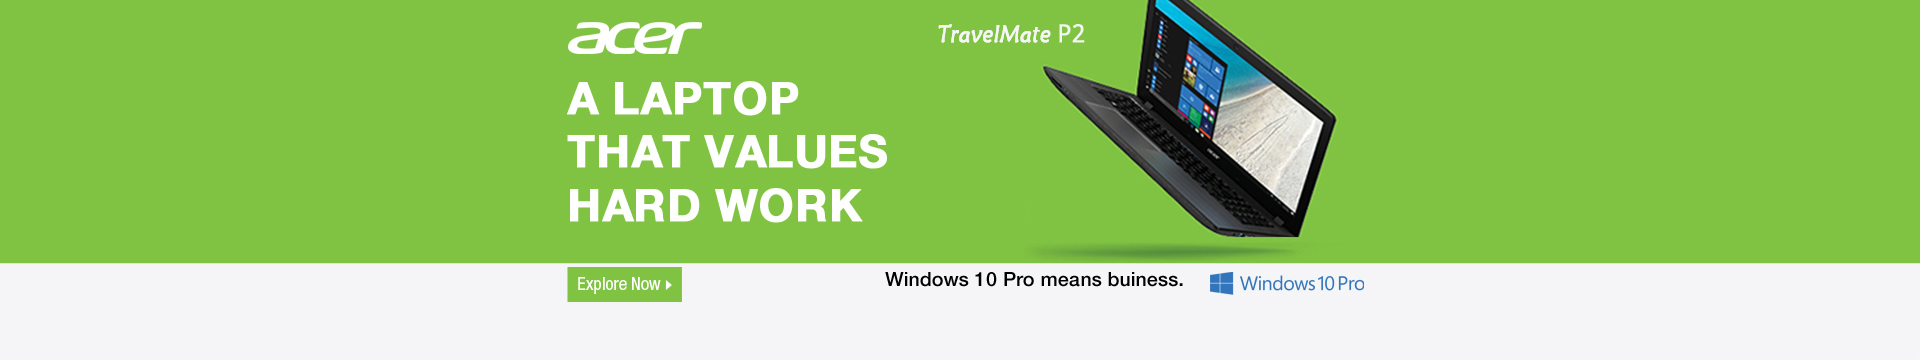 A Laptop that Value Hard Work